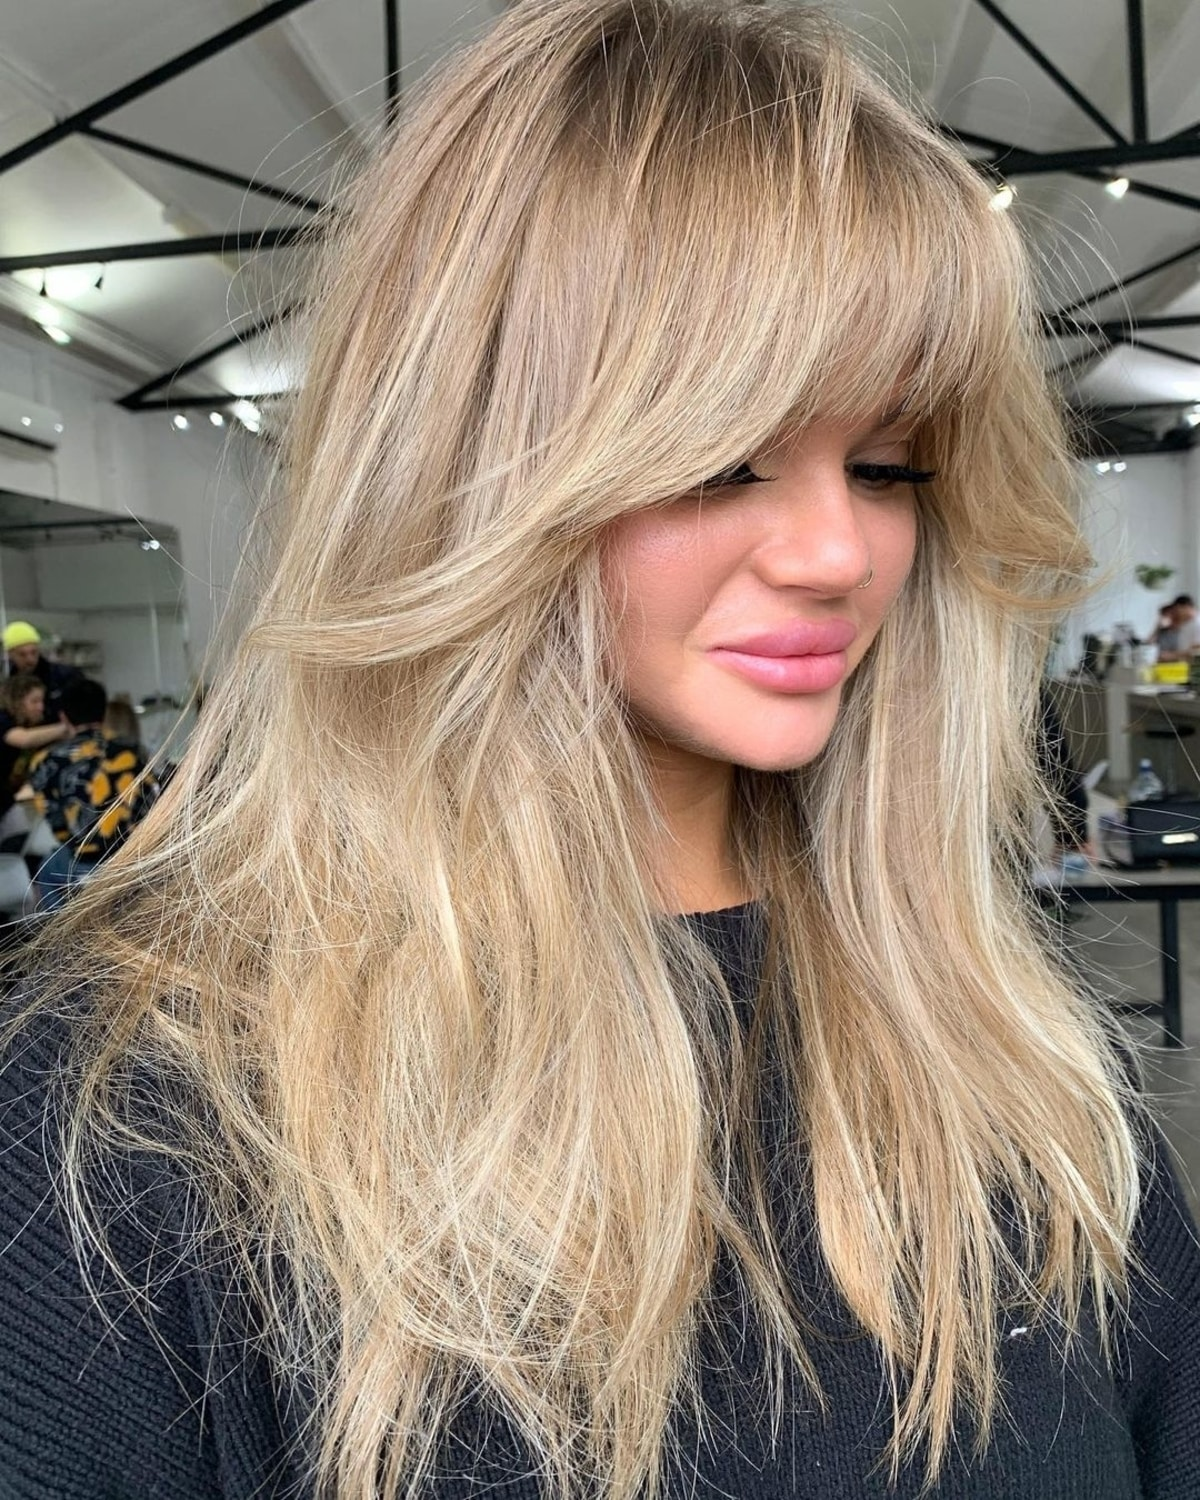 Long Blonde Hair with Bangs and Short Layers